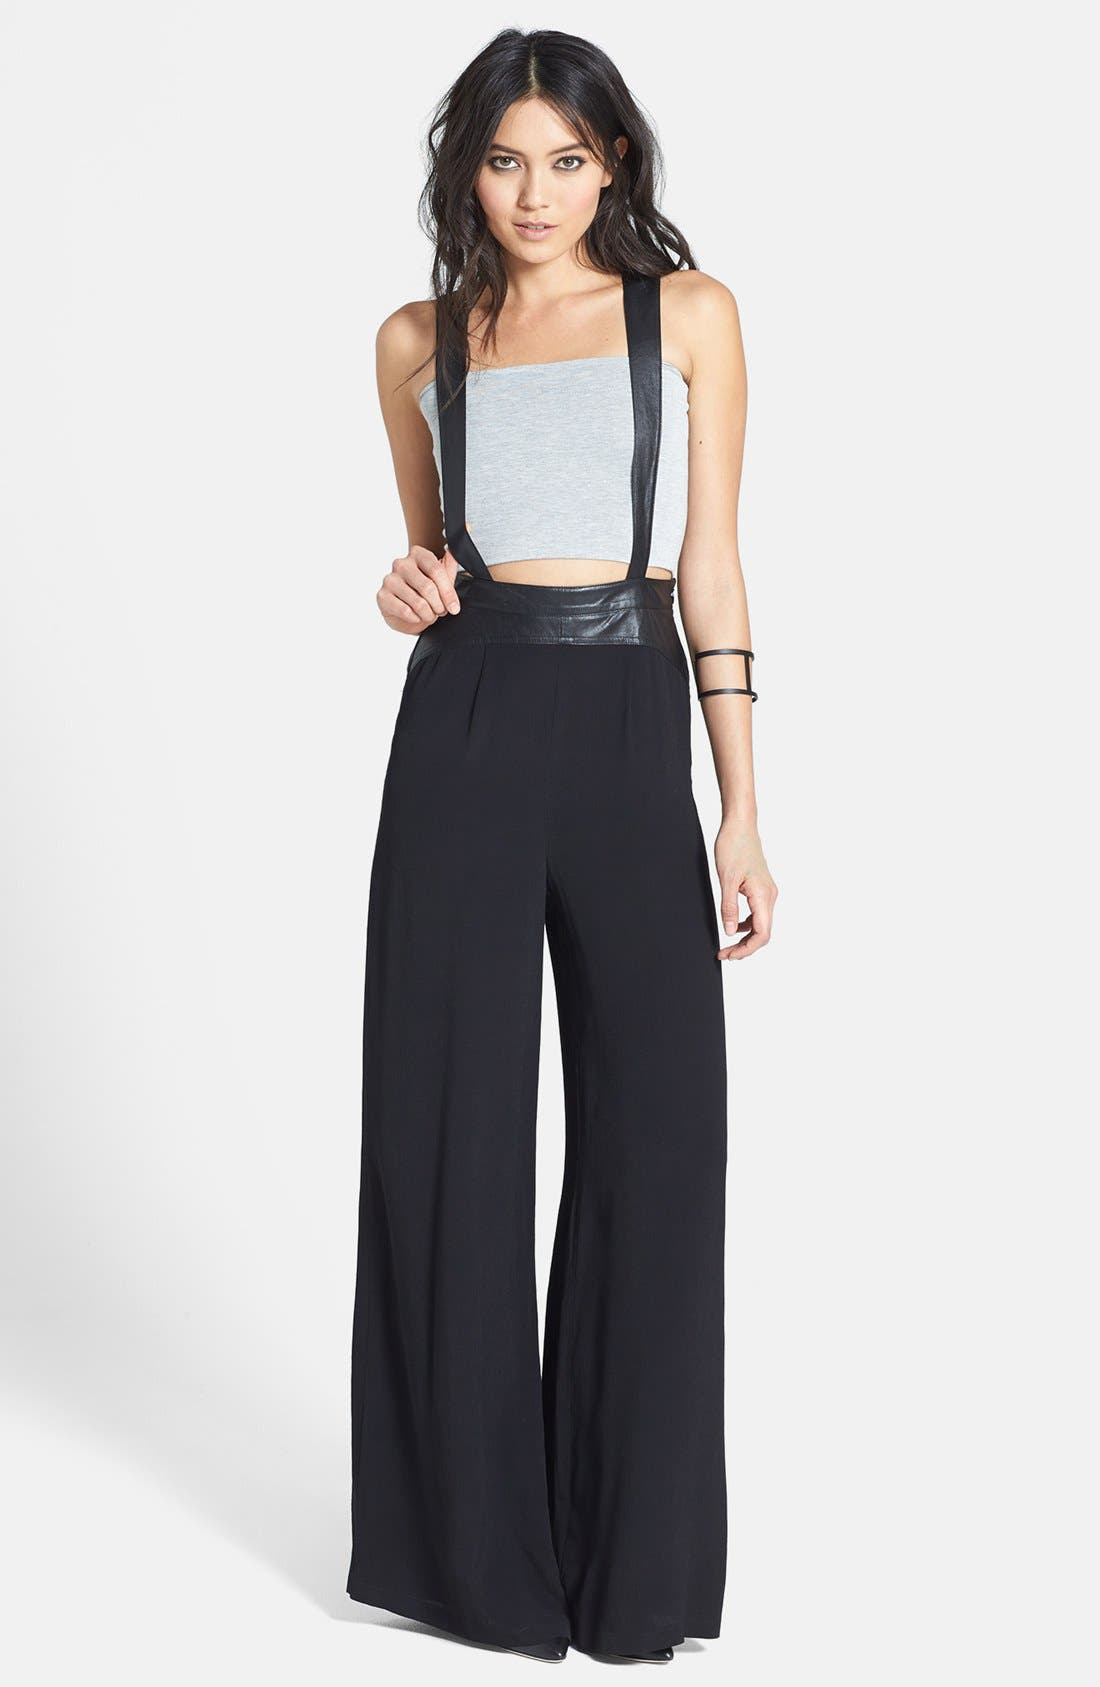 Alternate Image 1 Selected - ASTR Faux Leather Trim Suspender Pants